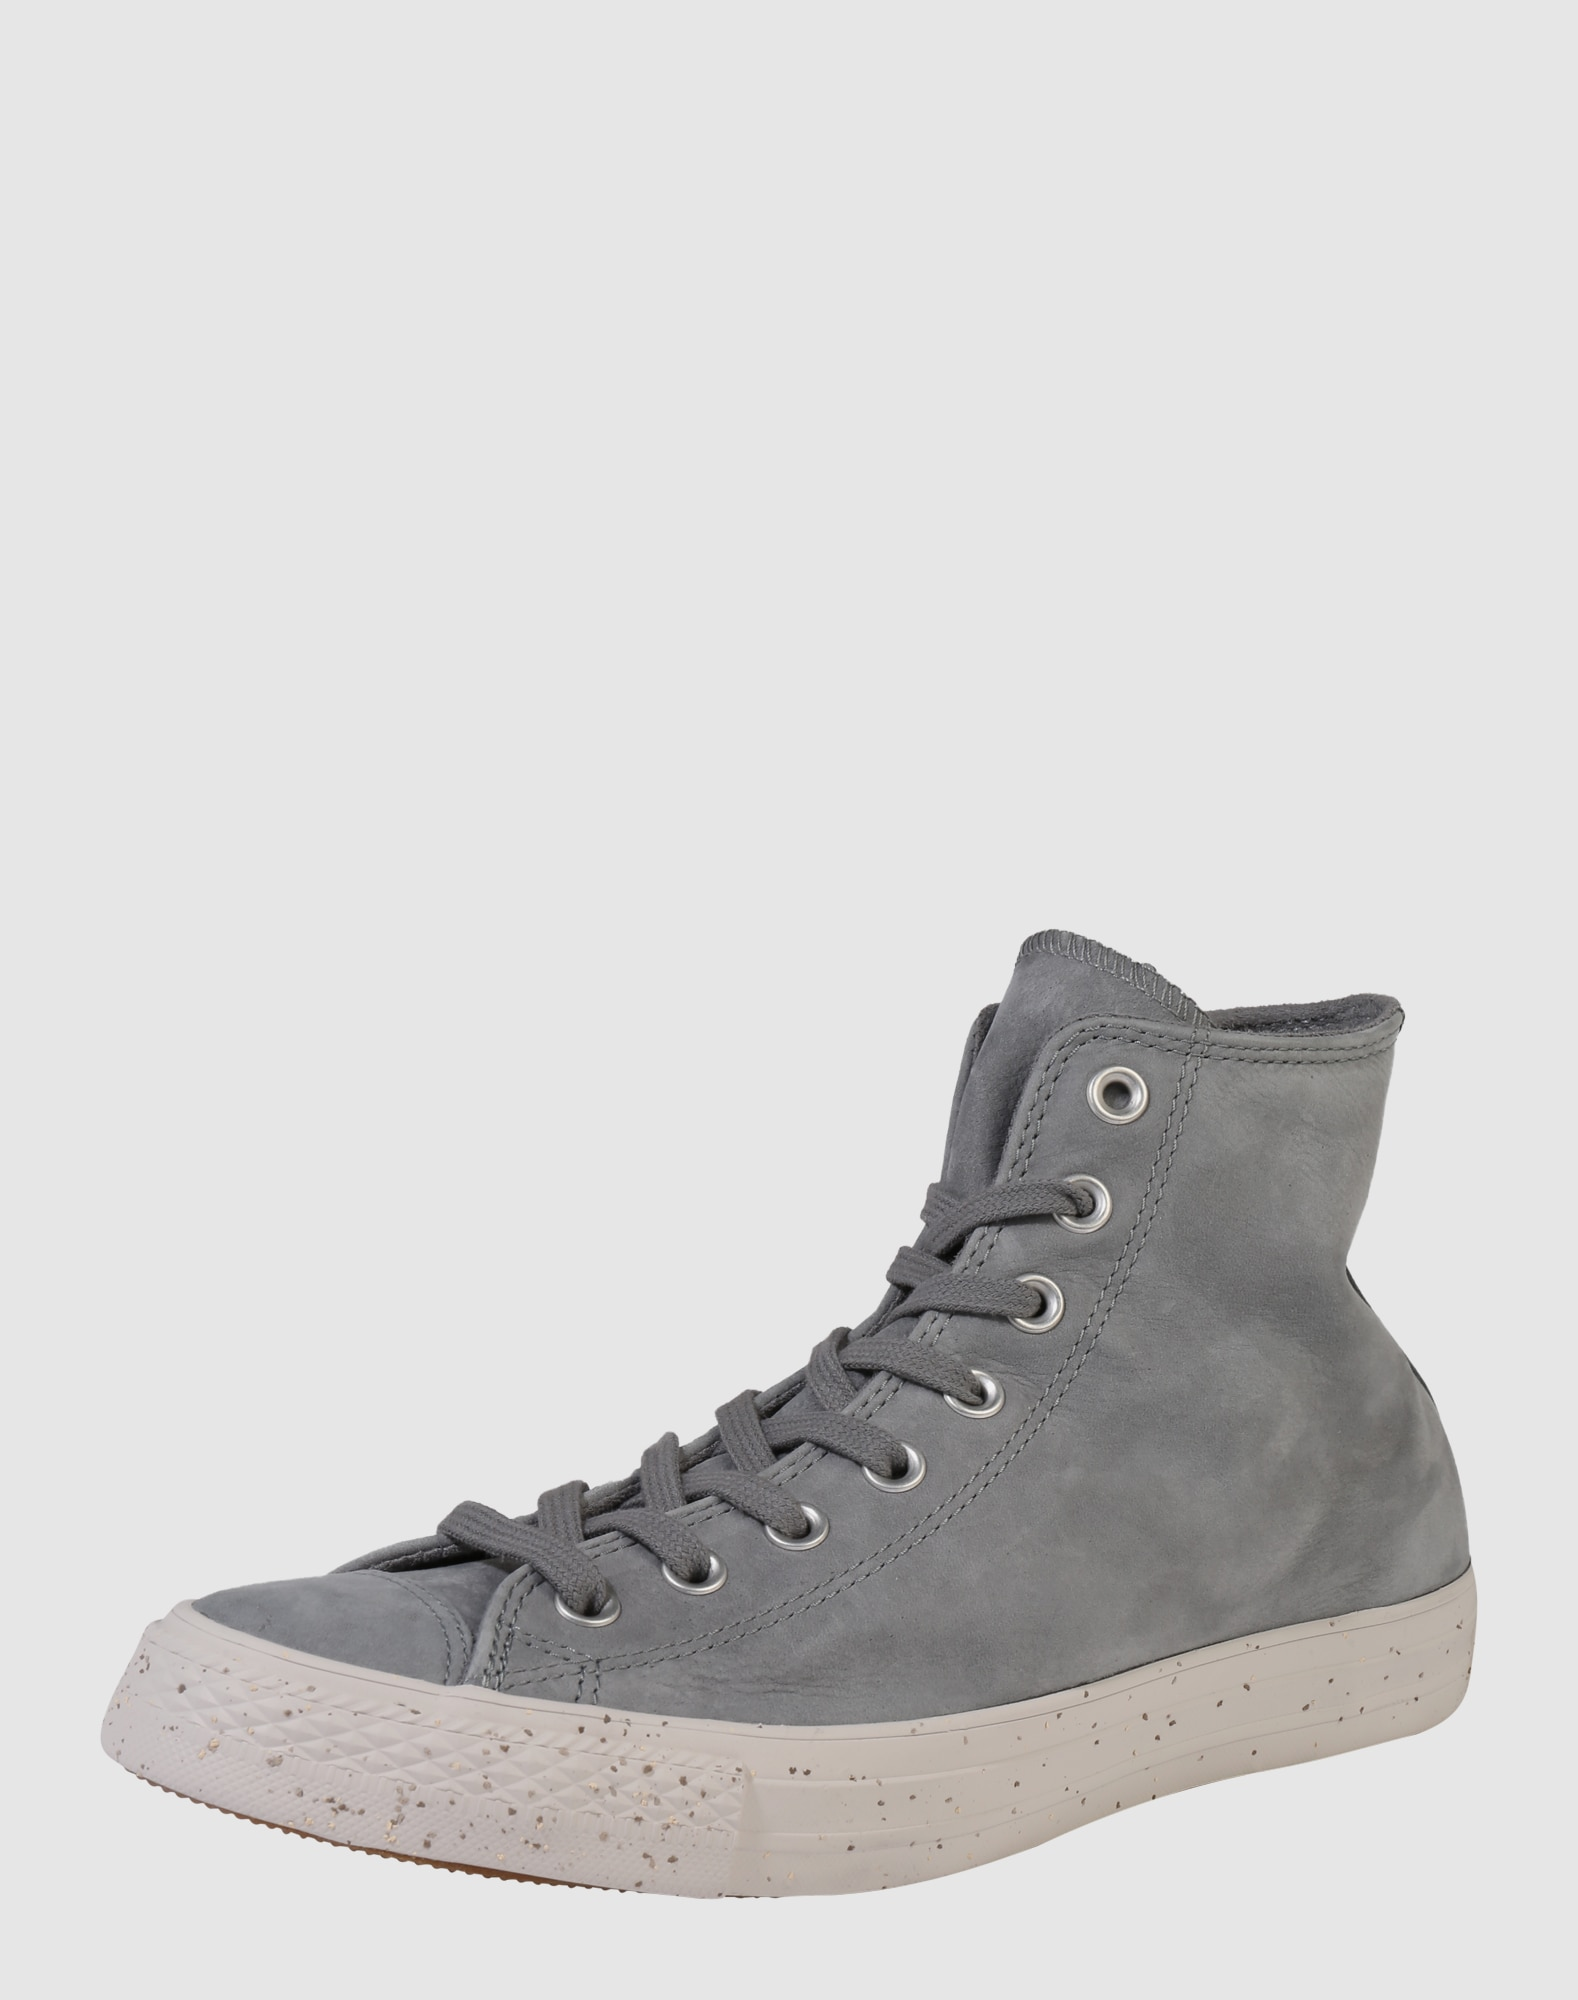 converse sneaker 39 chuck taylor all star hi 39 in grau about you. Black Bedroom Furniture Sets. Home Design Ideas